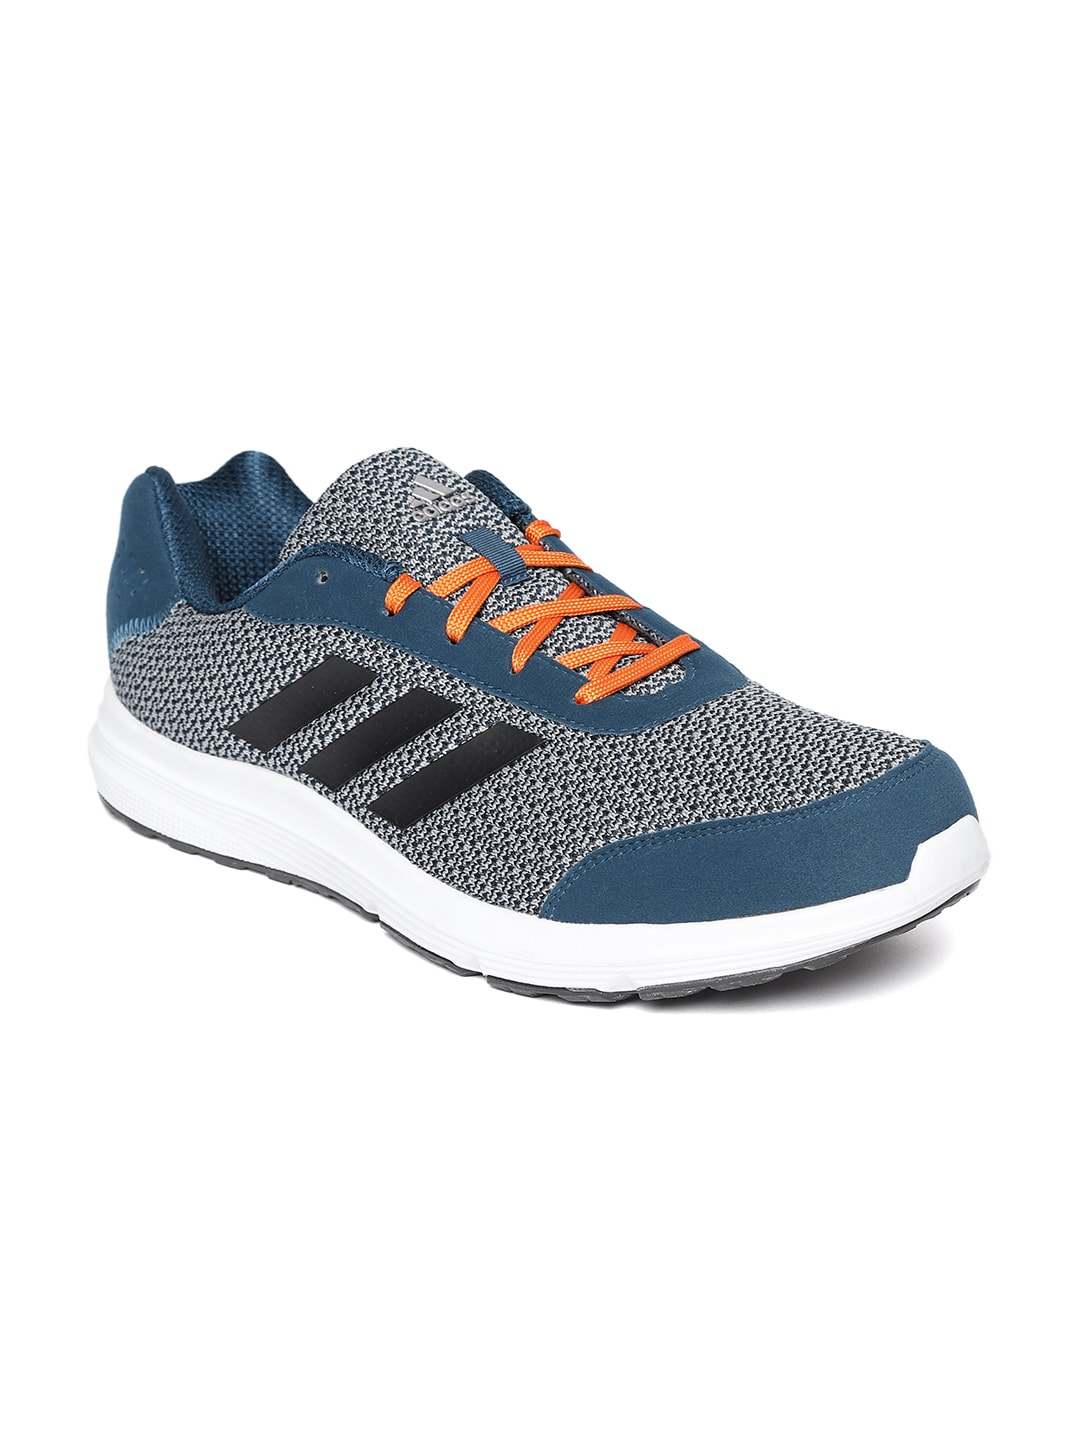 afdc9d209292 Adidas Blue Running Shoes - Buy Adidas Blue Running Shoes online in India